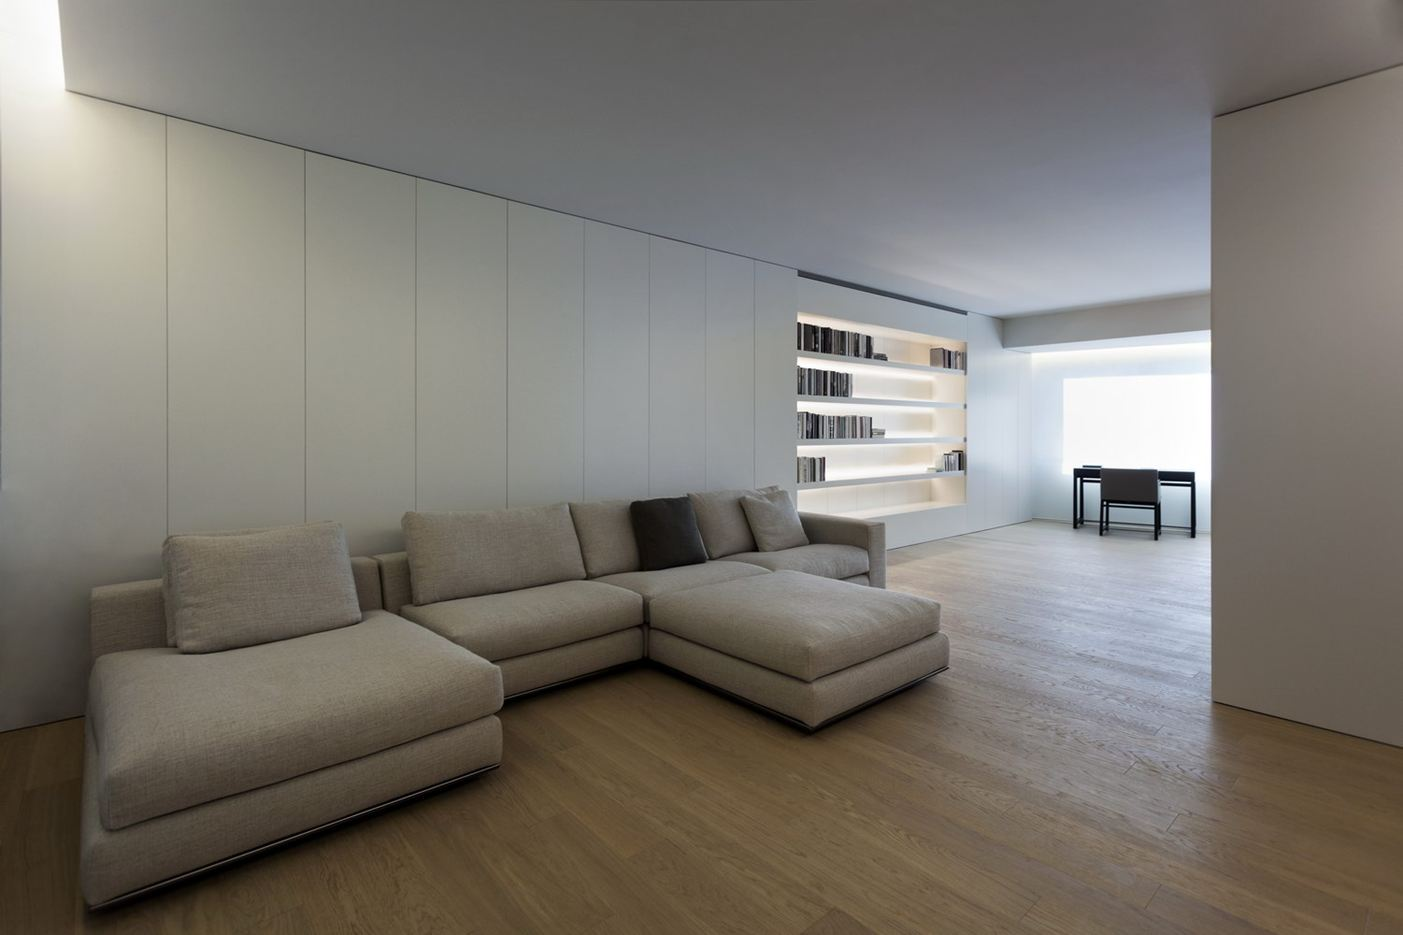 Antiguo Reino House in Valencia, Spain by Fran Silvestre Arquitectos